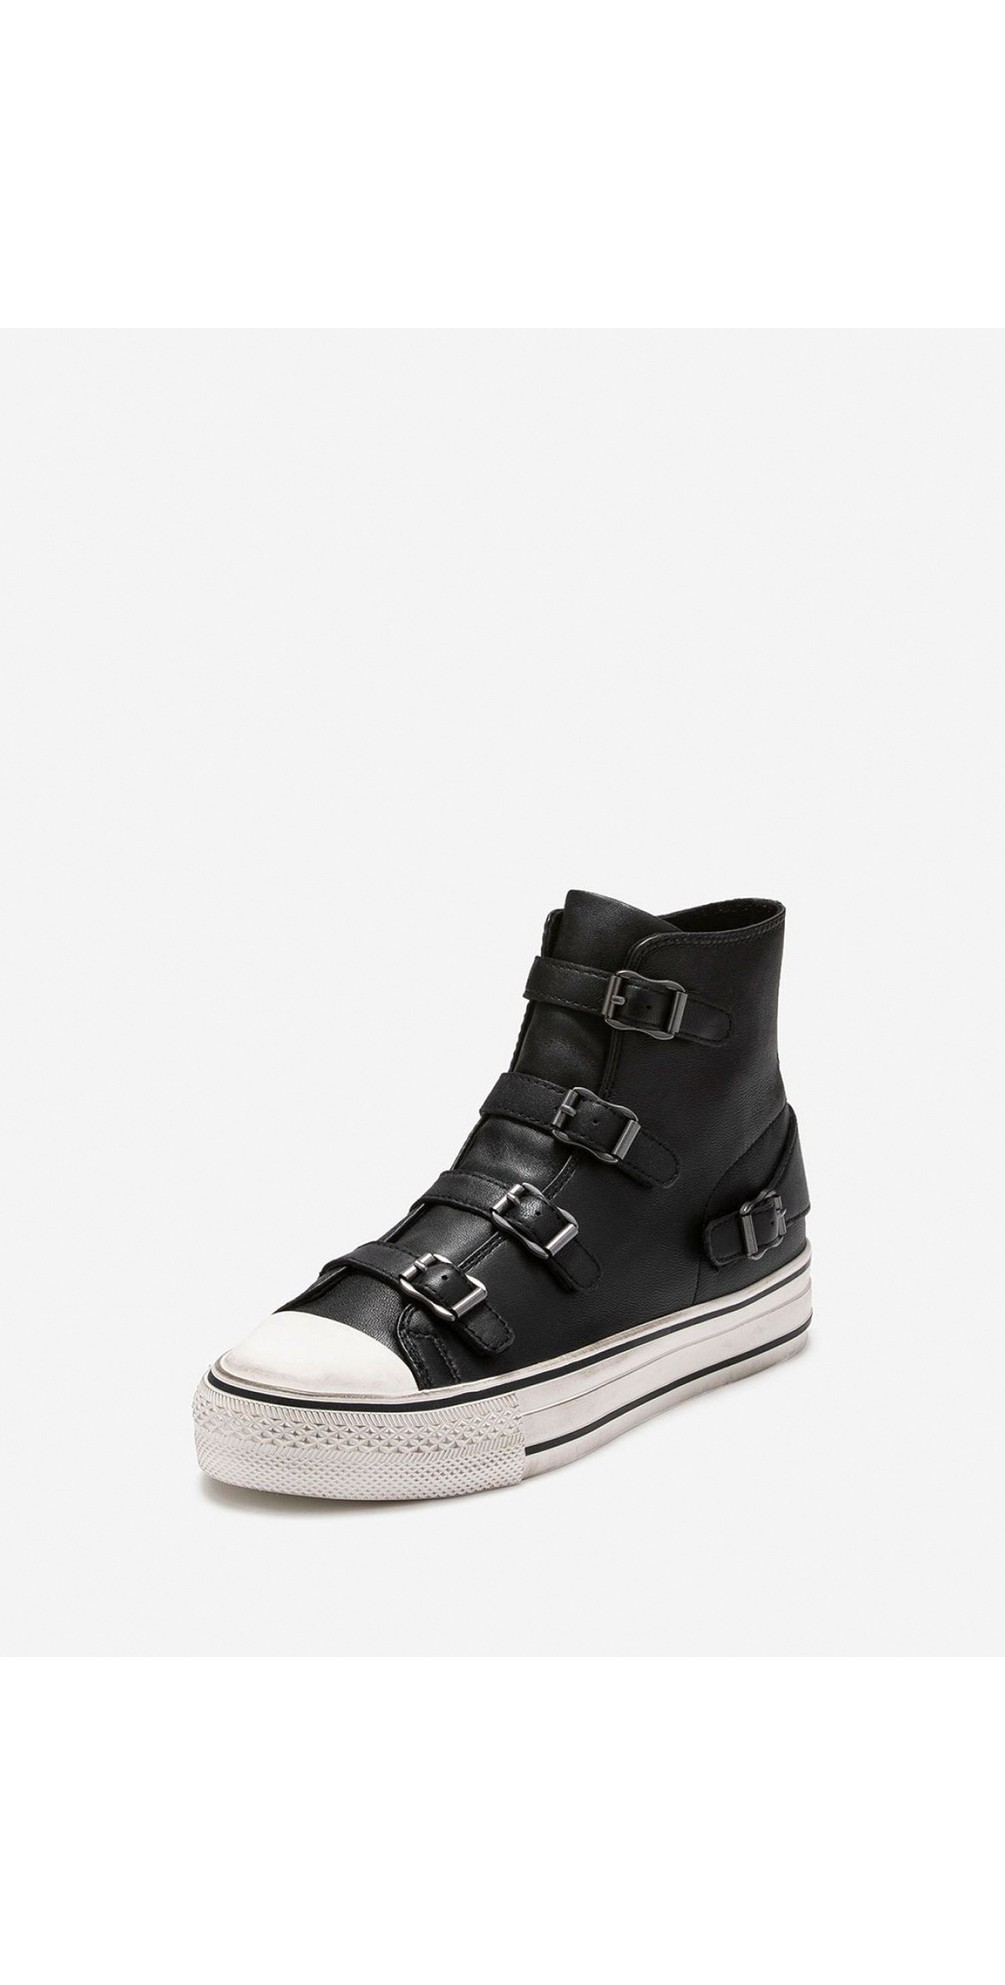 Virgin Black Leather Classic Buckle Trainers main image